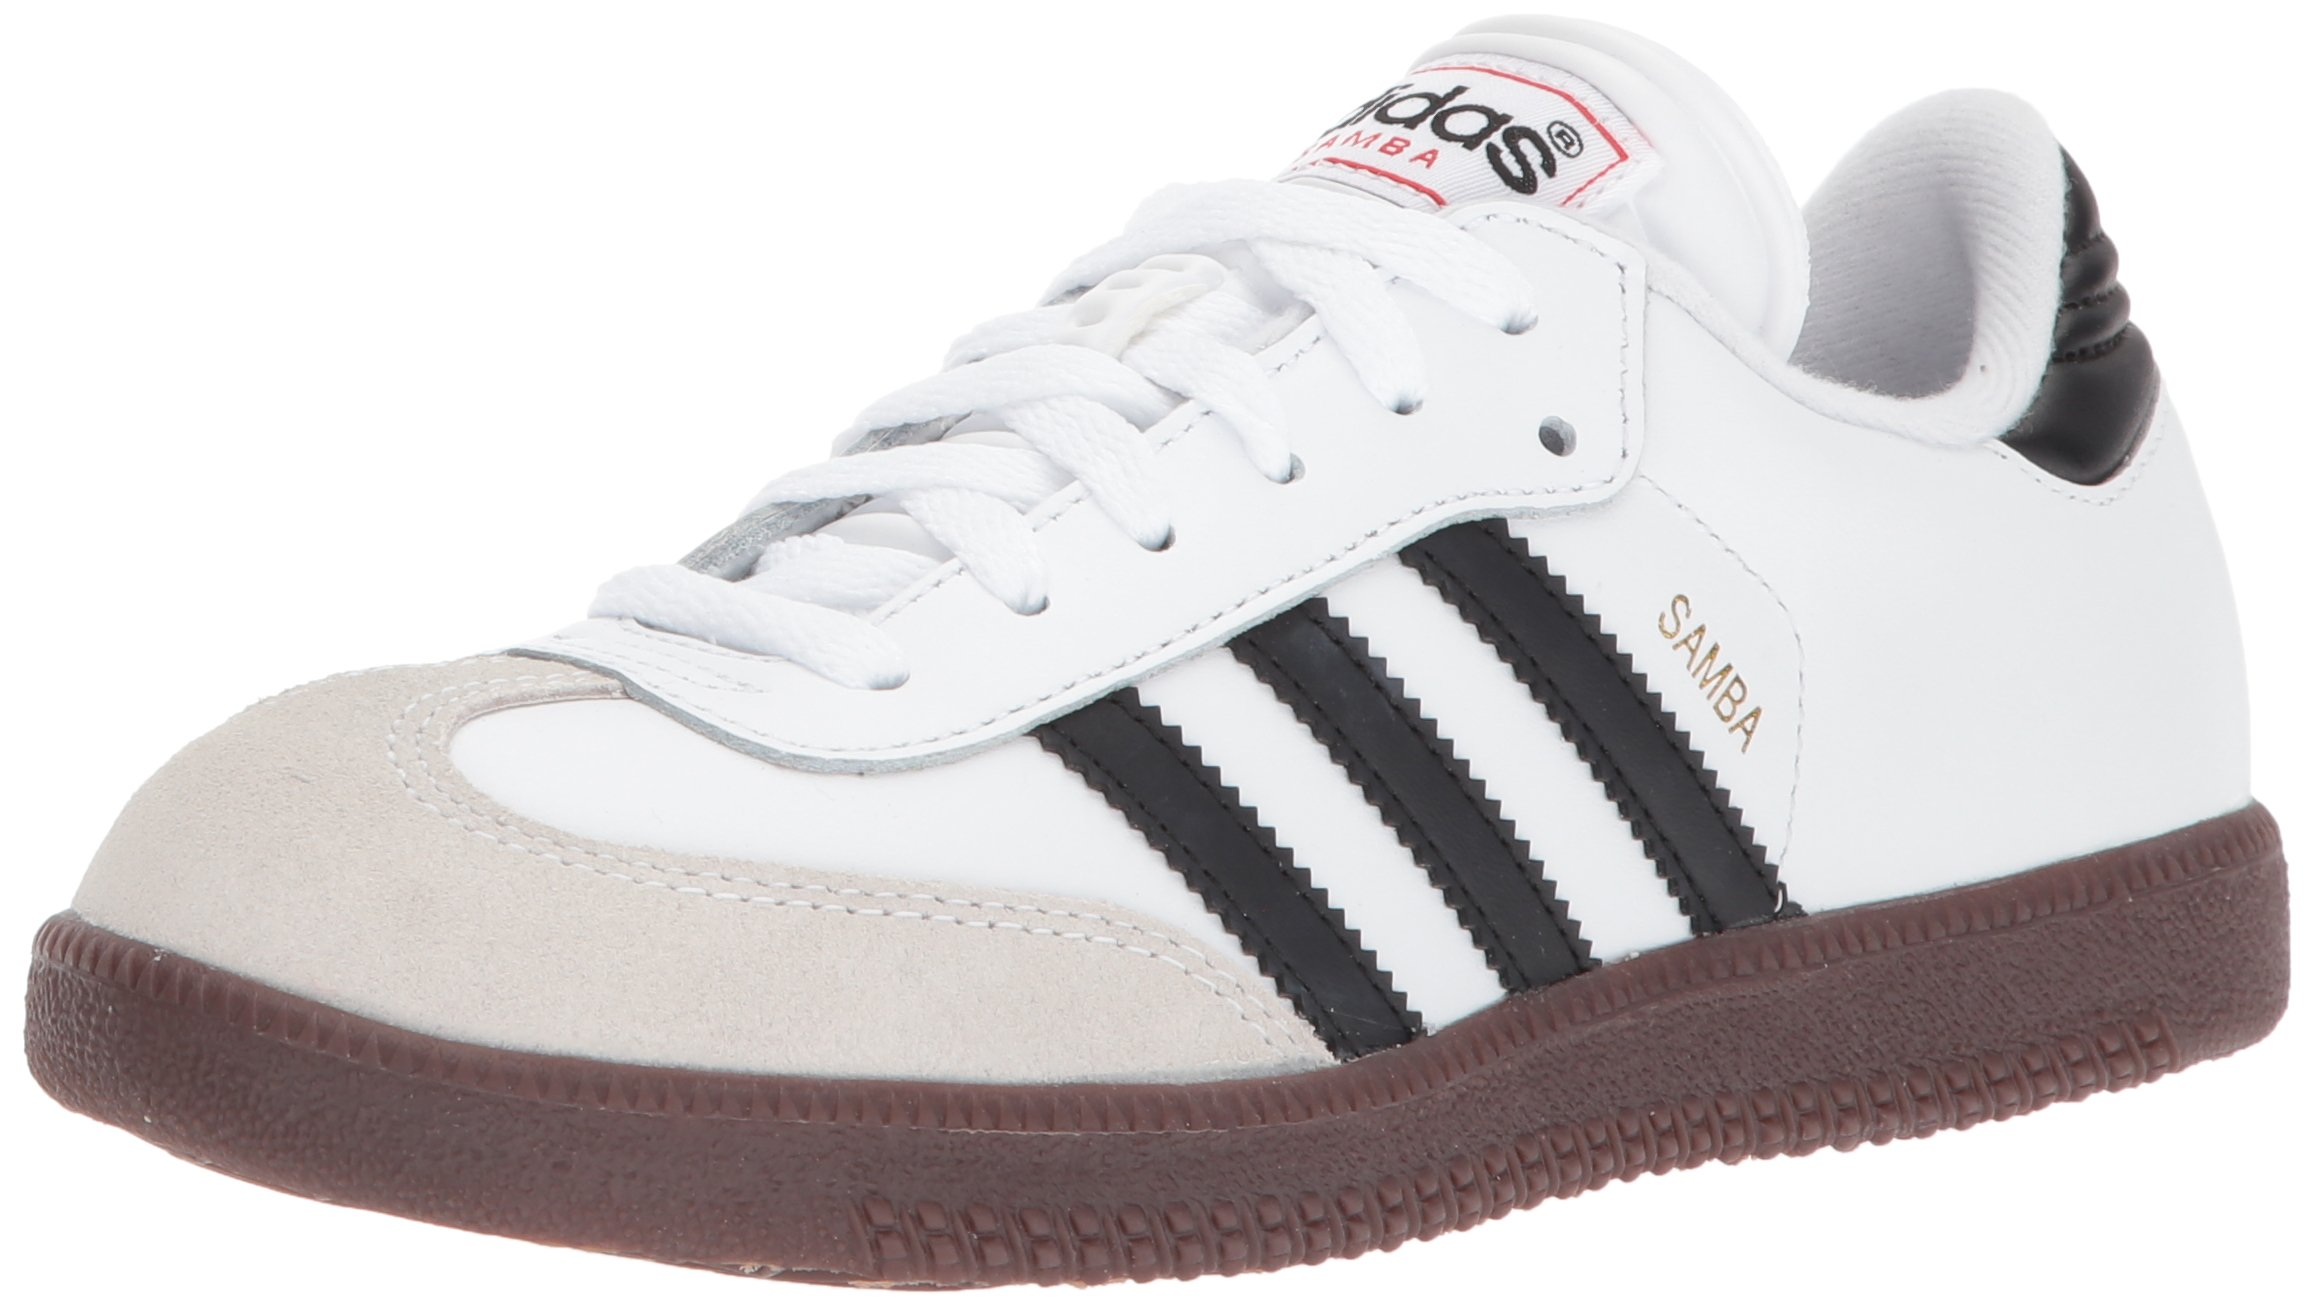 c6661c6ac Get Quotations · adidas Samba Classic Leather Soccer Shoe (Toddler Little  Kid Big Kid)